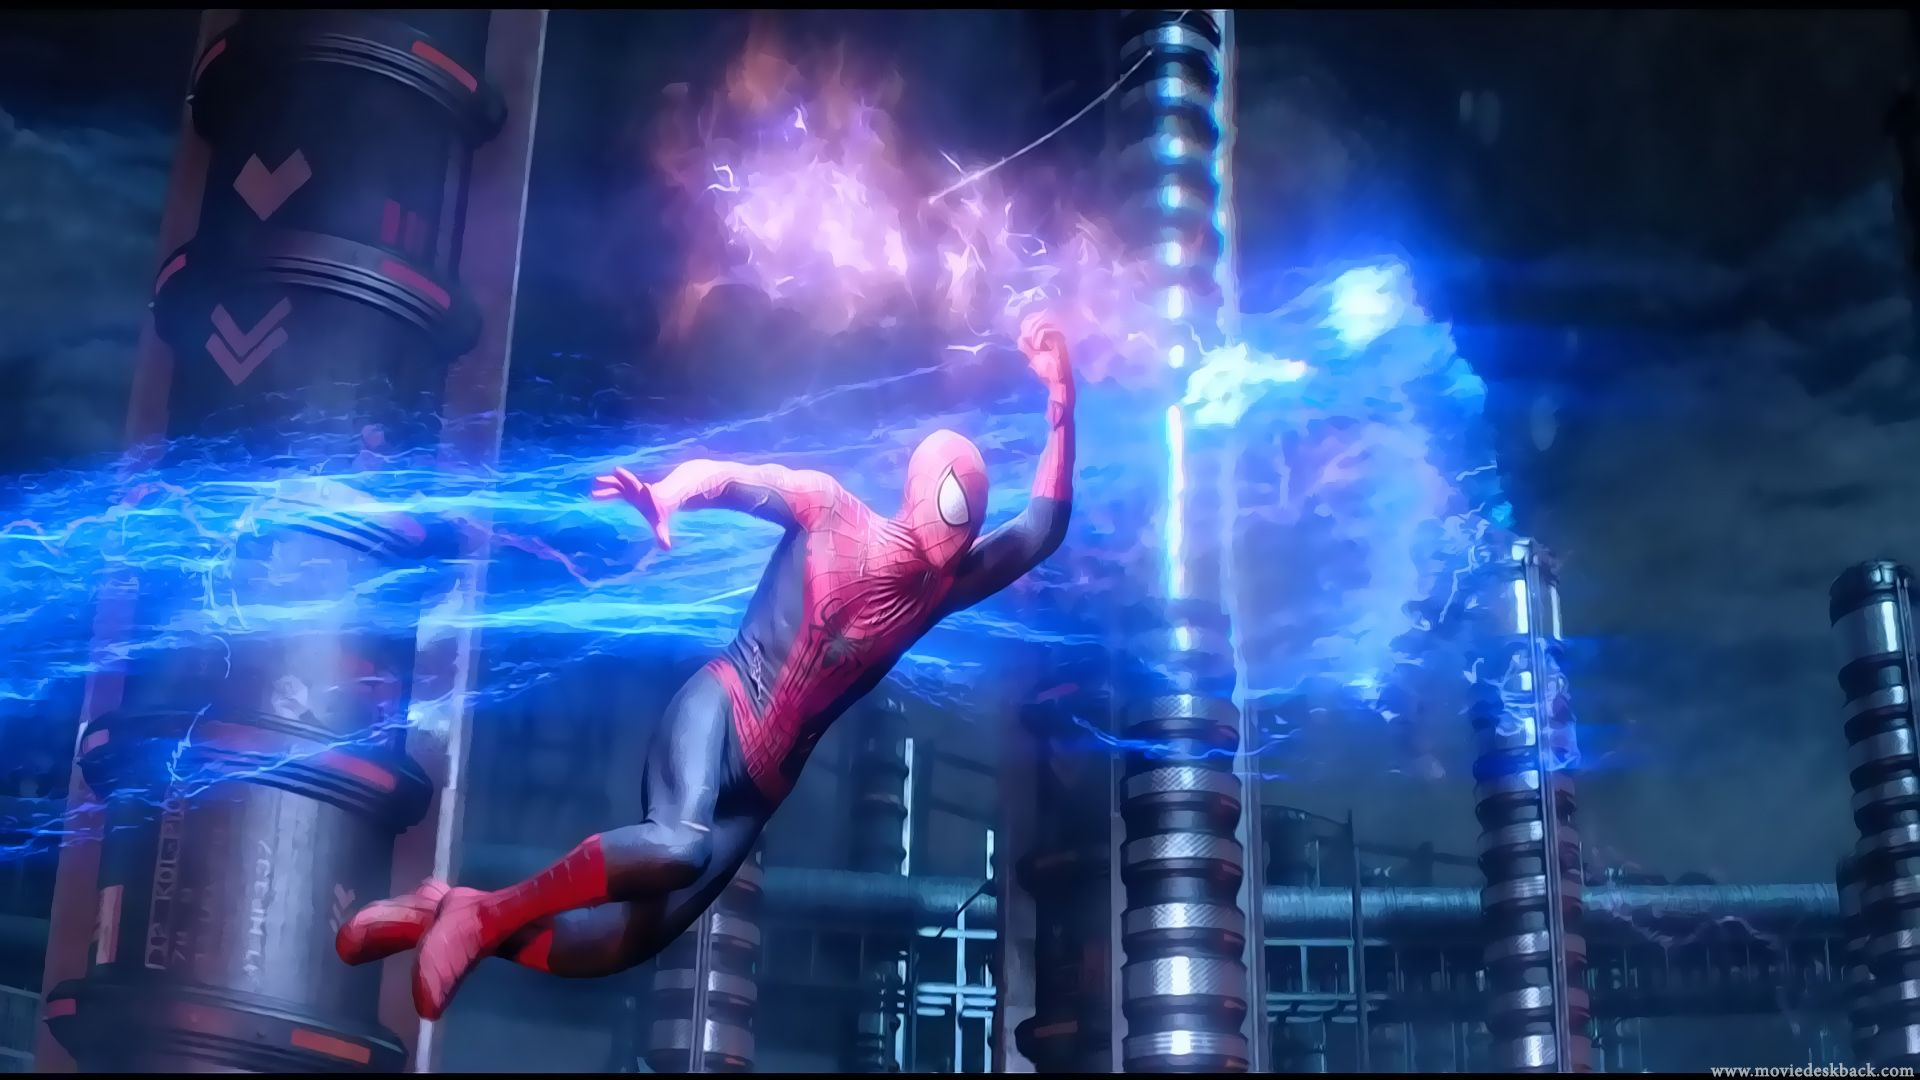 The Amazing Spider Man Wallpapers Images Collection of The